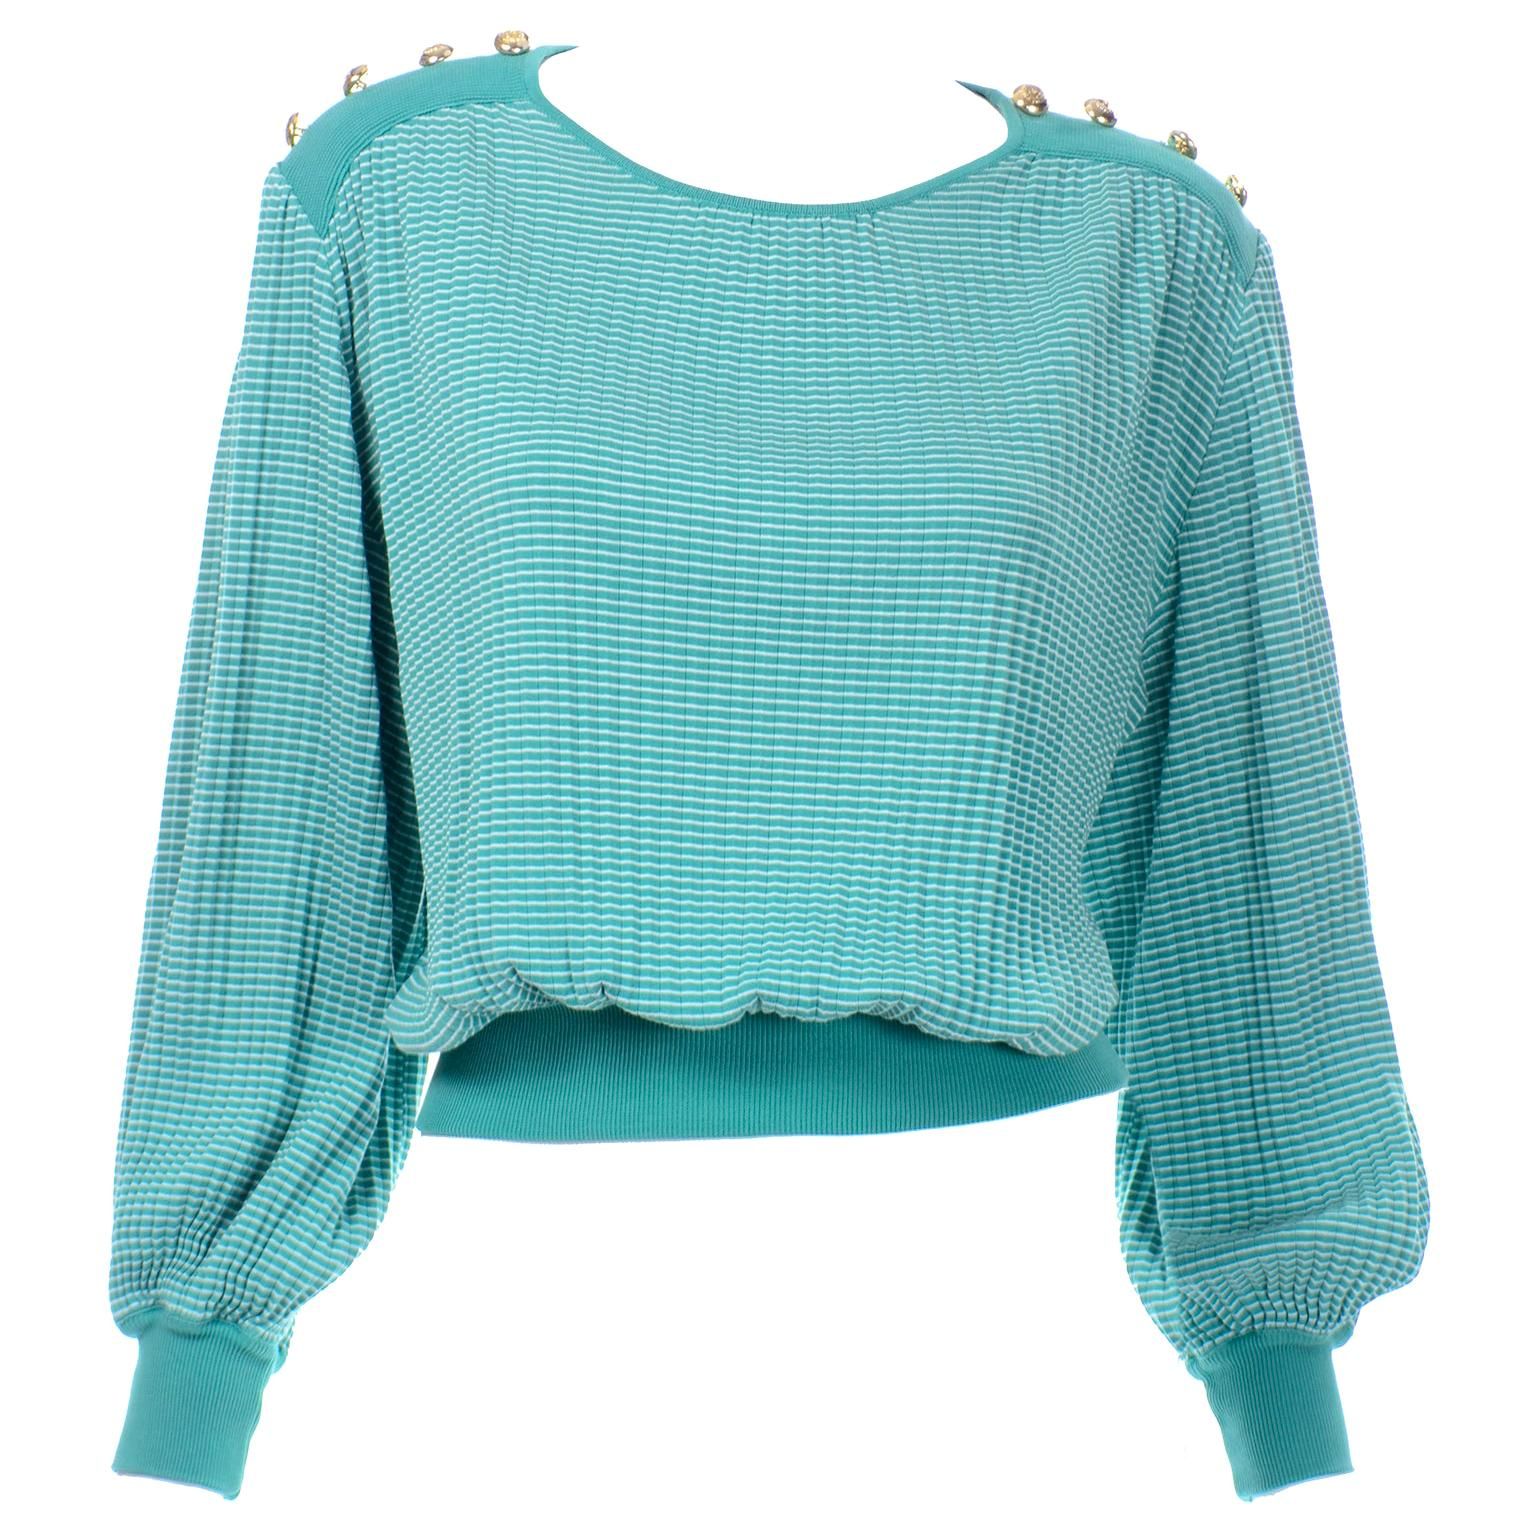 Vintage Valentino Green Knit Top With Gold Buttons And Bishop Sleeves